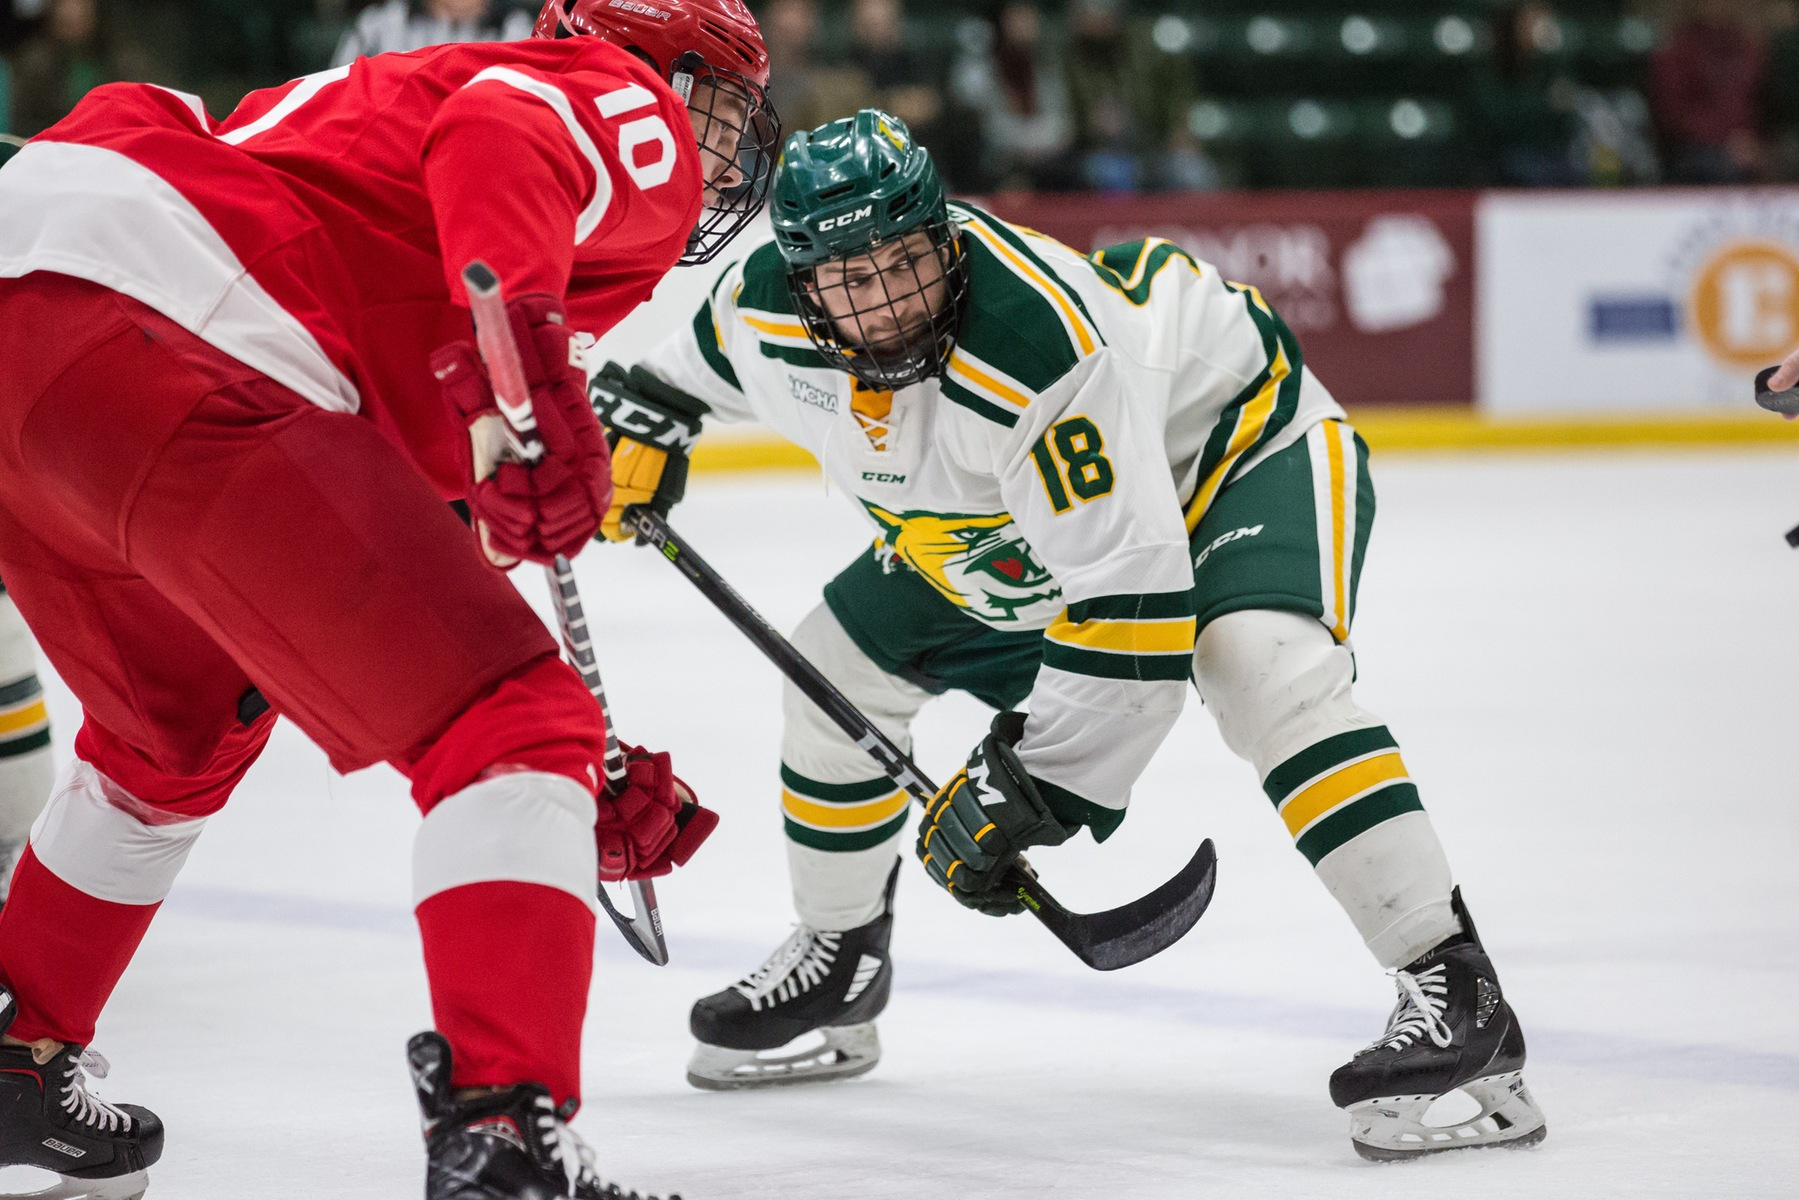 Wildcat Offense Stays Hot, NMU Extends Win Streak